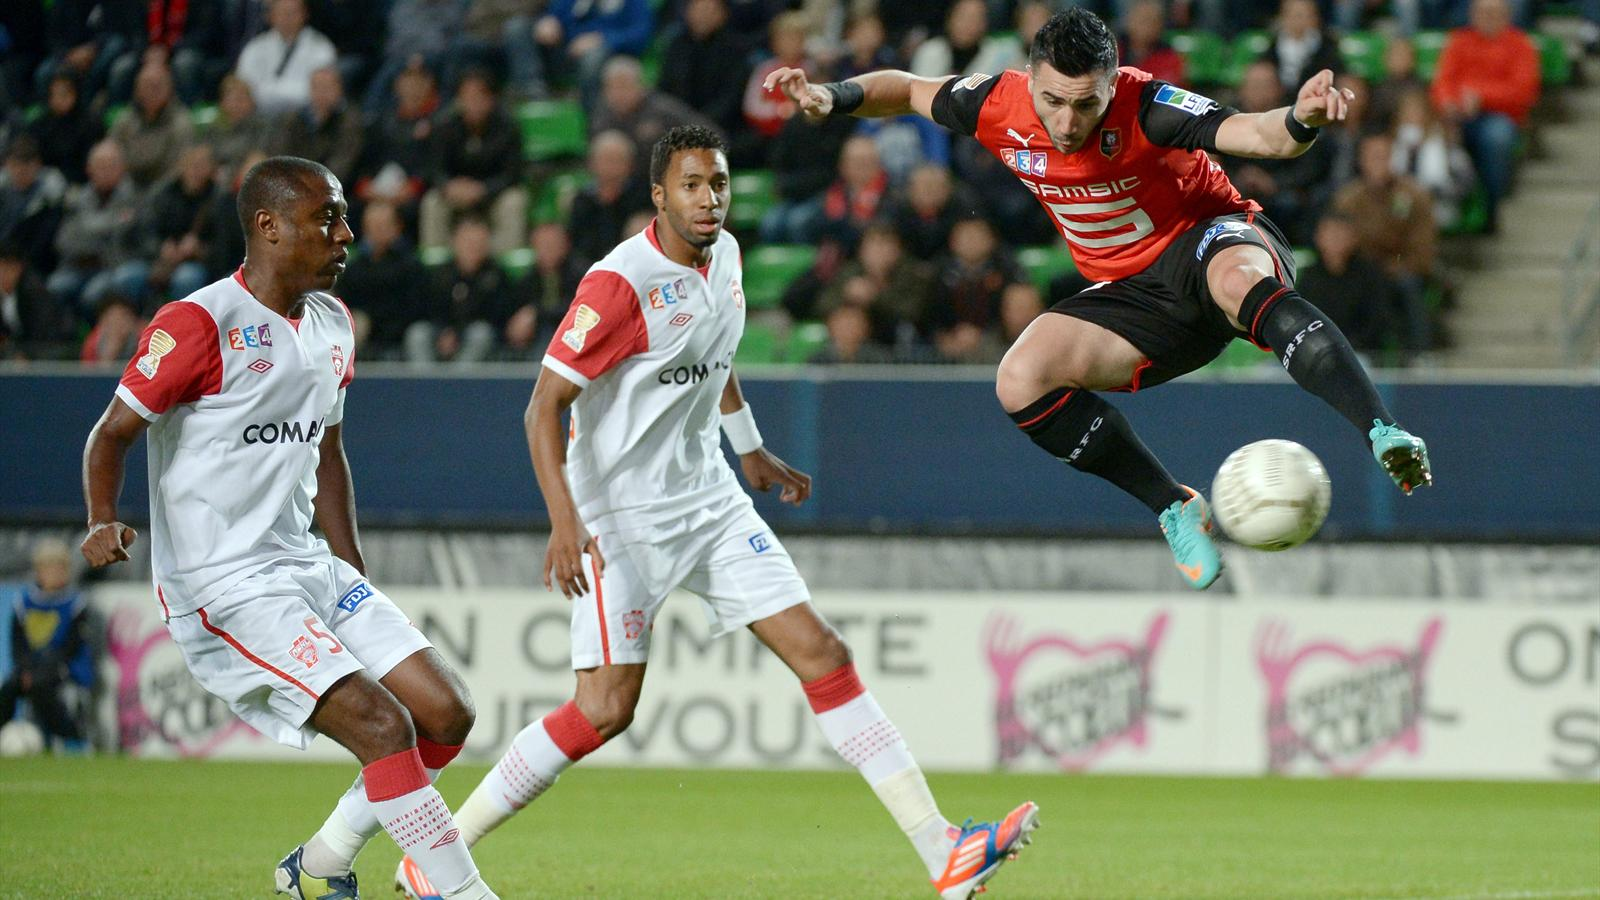 Rennes red colle coupe de la ligue 2012 2013 football eurosport - Coupe de la ligue 2013 14 ...